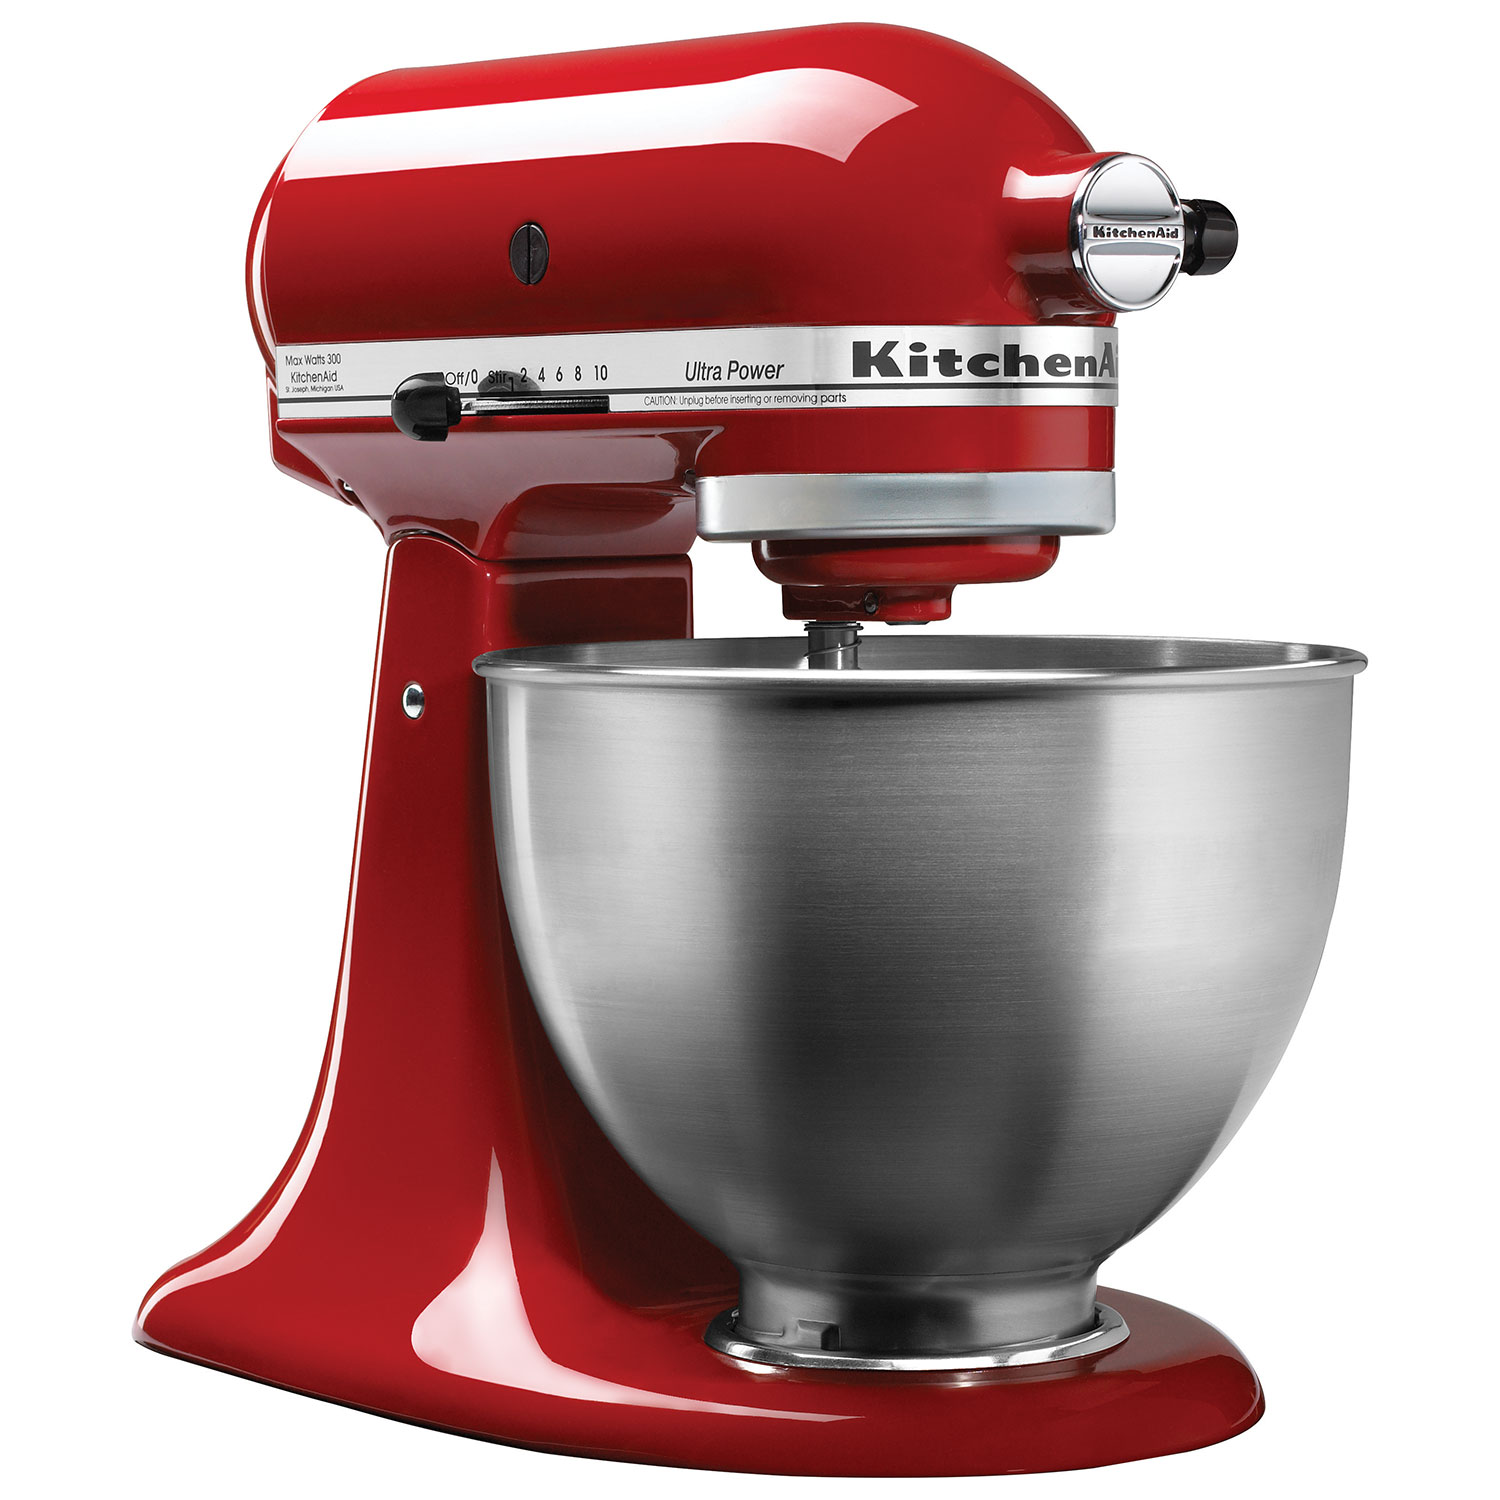 KitchenAid Ultra Power Stand Mixer   4.5Qt   300 Watt   Empire Red : Stand  Mixers   Best Buy Canada